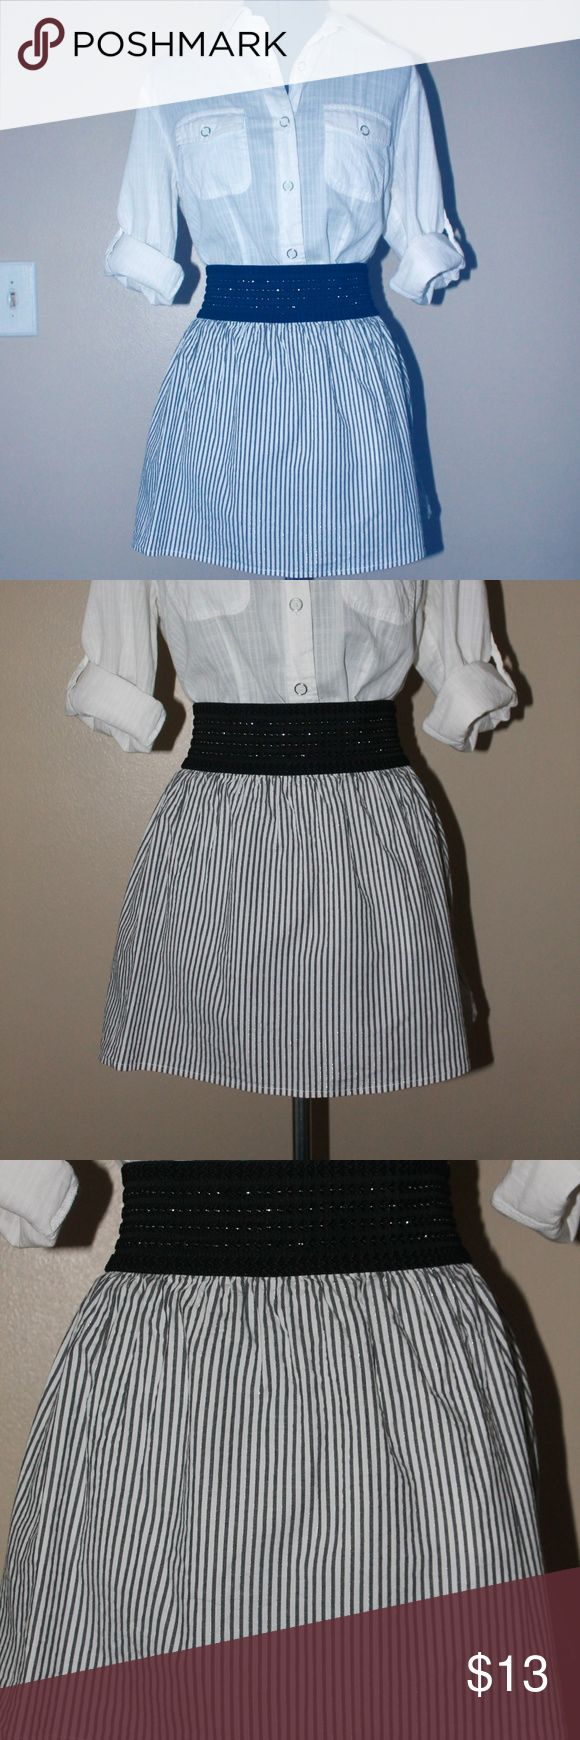 Heart Soul black and White mini skirt Heart and Soul brand white and black striped mini skirt with silver details and elastic waistband Heart Soul Skirts Mini